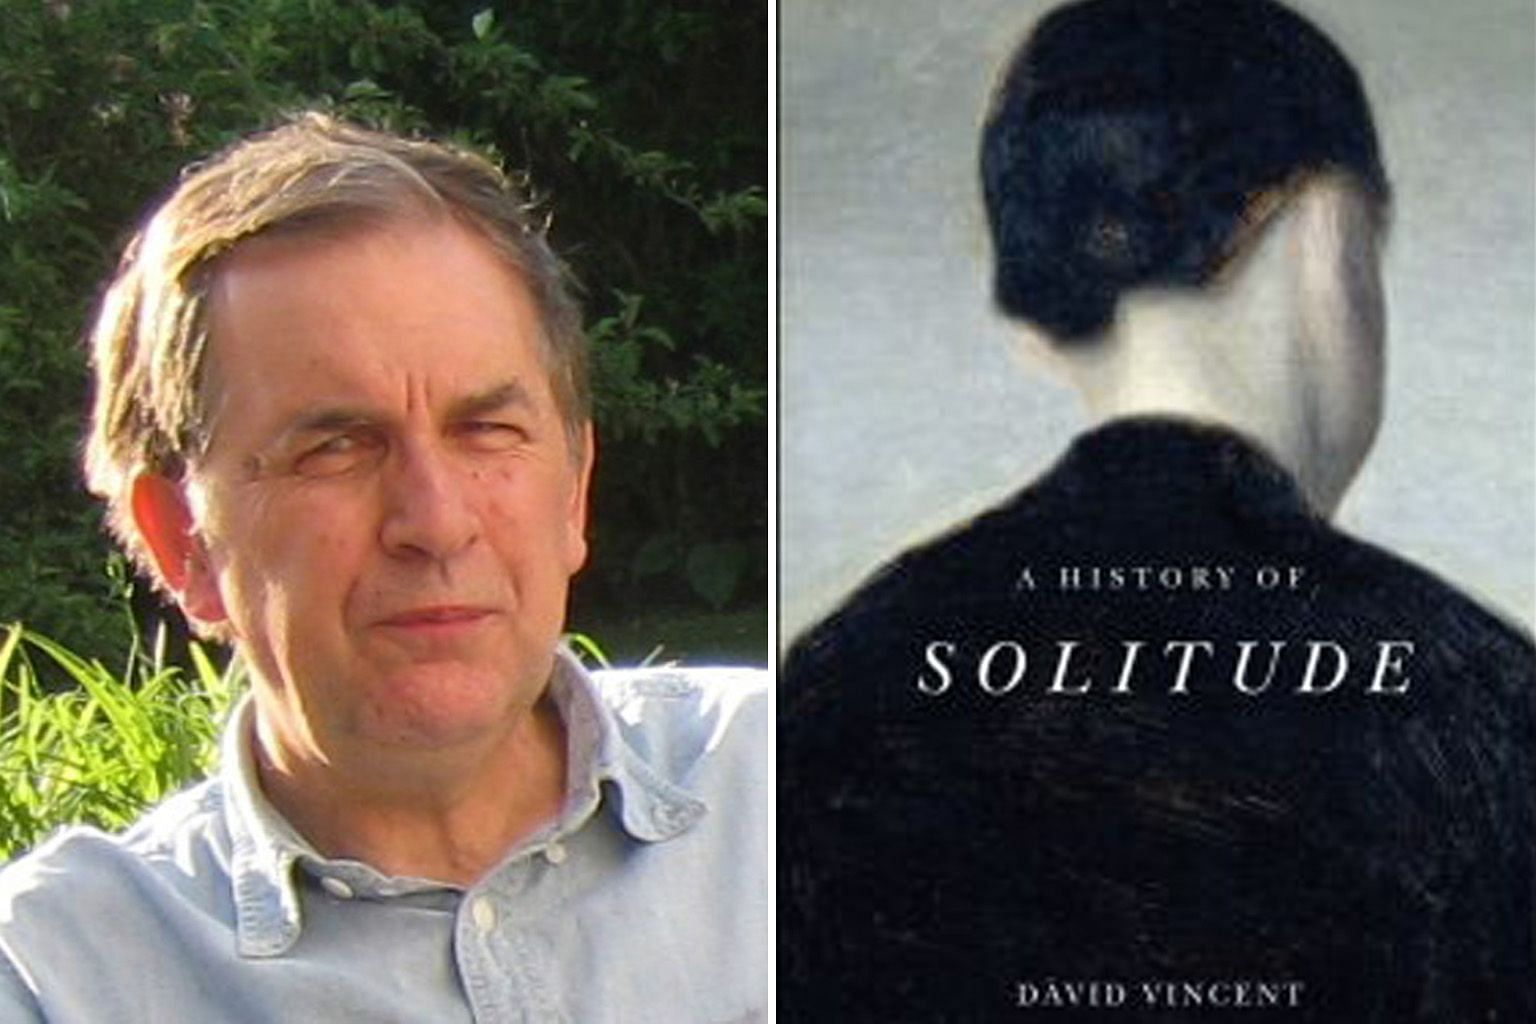 A History Of Solitude (above) by David Vincent (left) was published in the midst of the coronavirus pandemic in an unexpected coincidence.